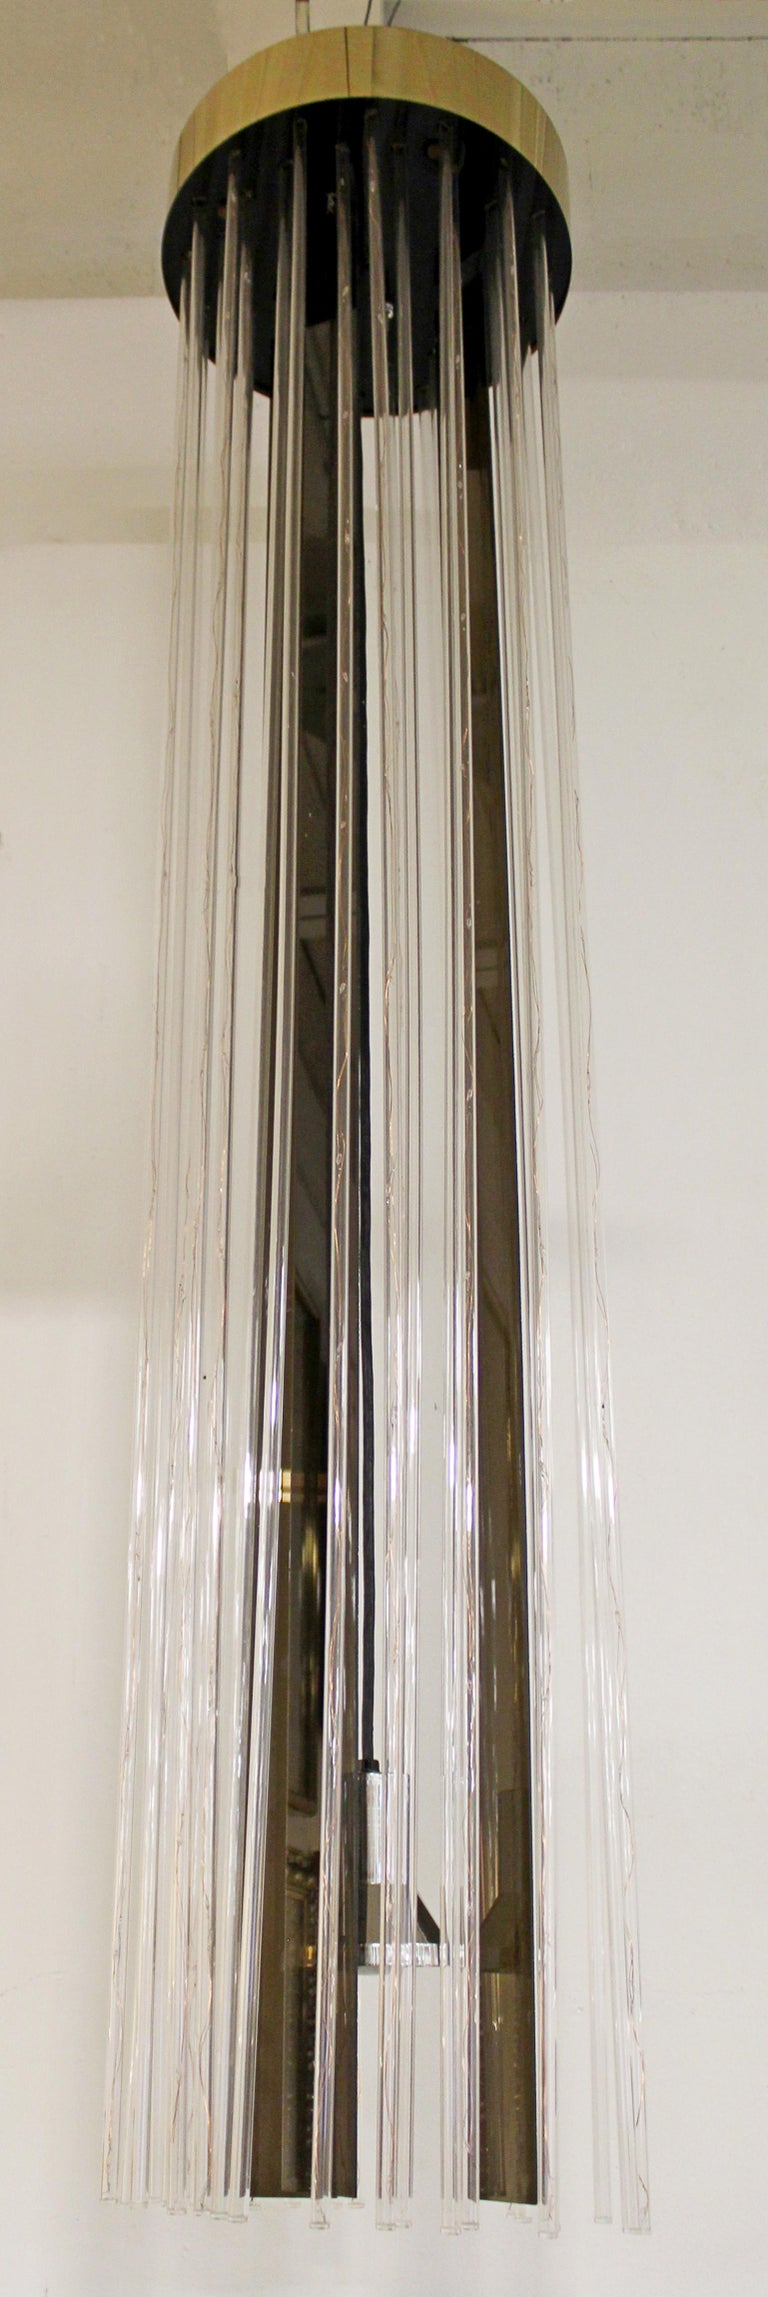 For your consideration is an absolutely fabulous, long hanging chandelier, made of brass and acrylic, circa the 1960s. In very good vintage condition. The dimensions are 16